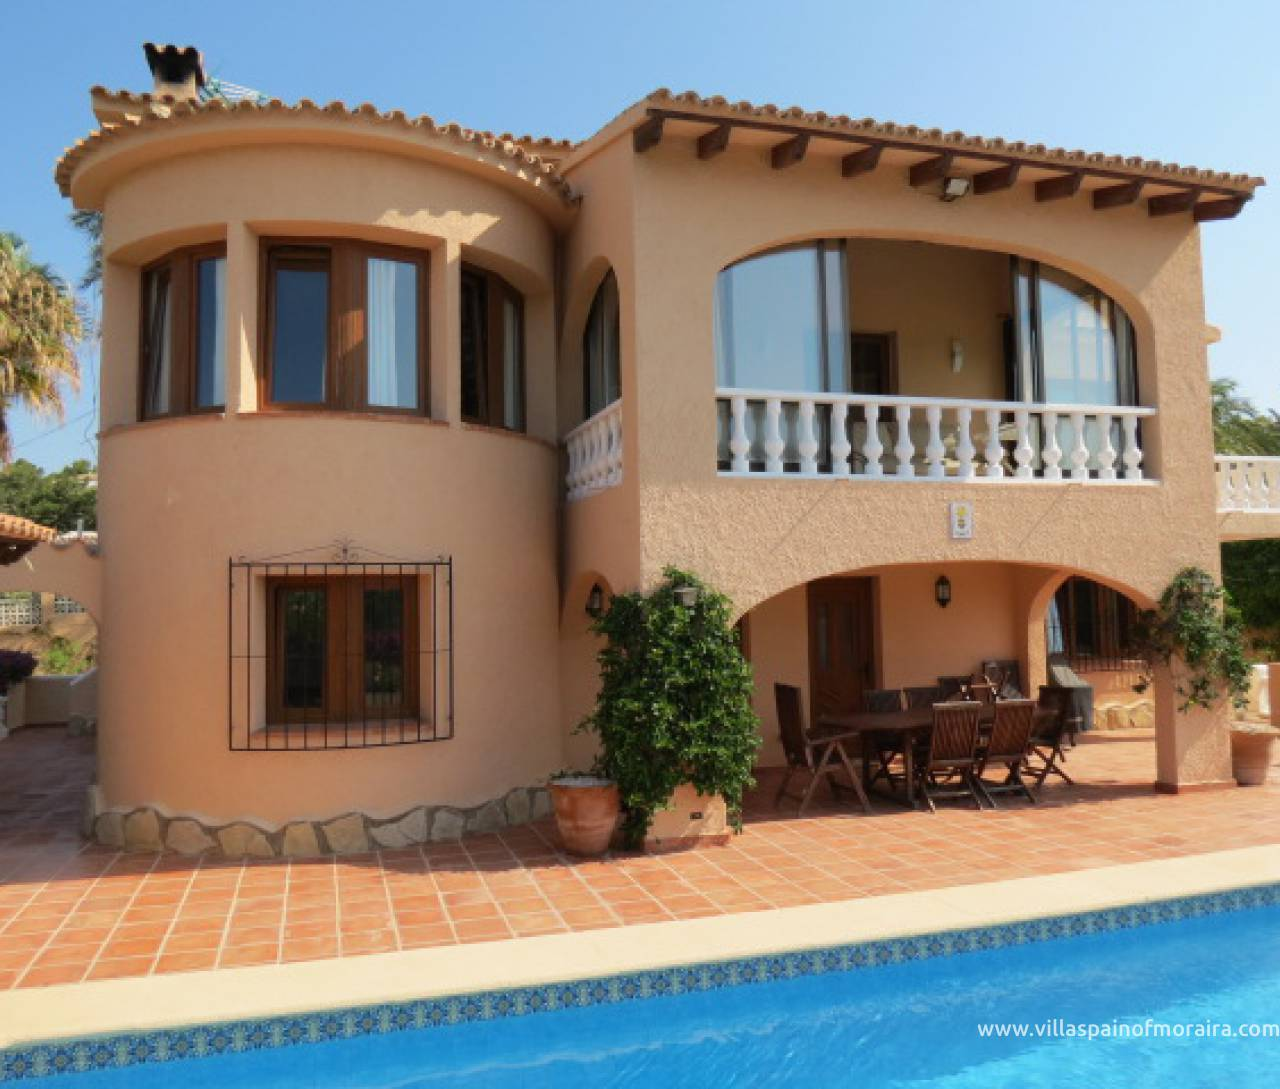 Sabatera Moraira villa for sale